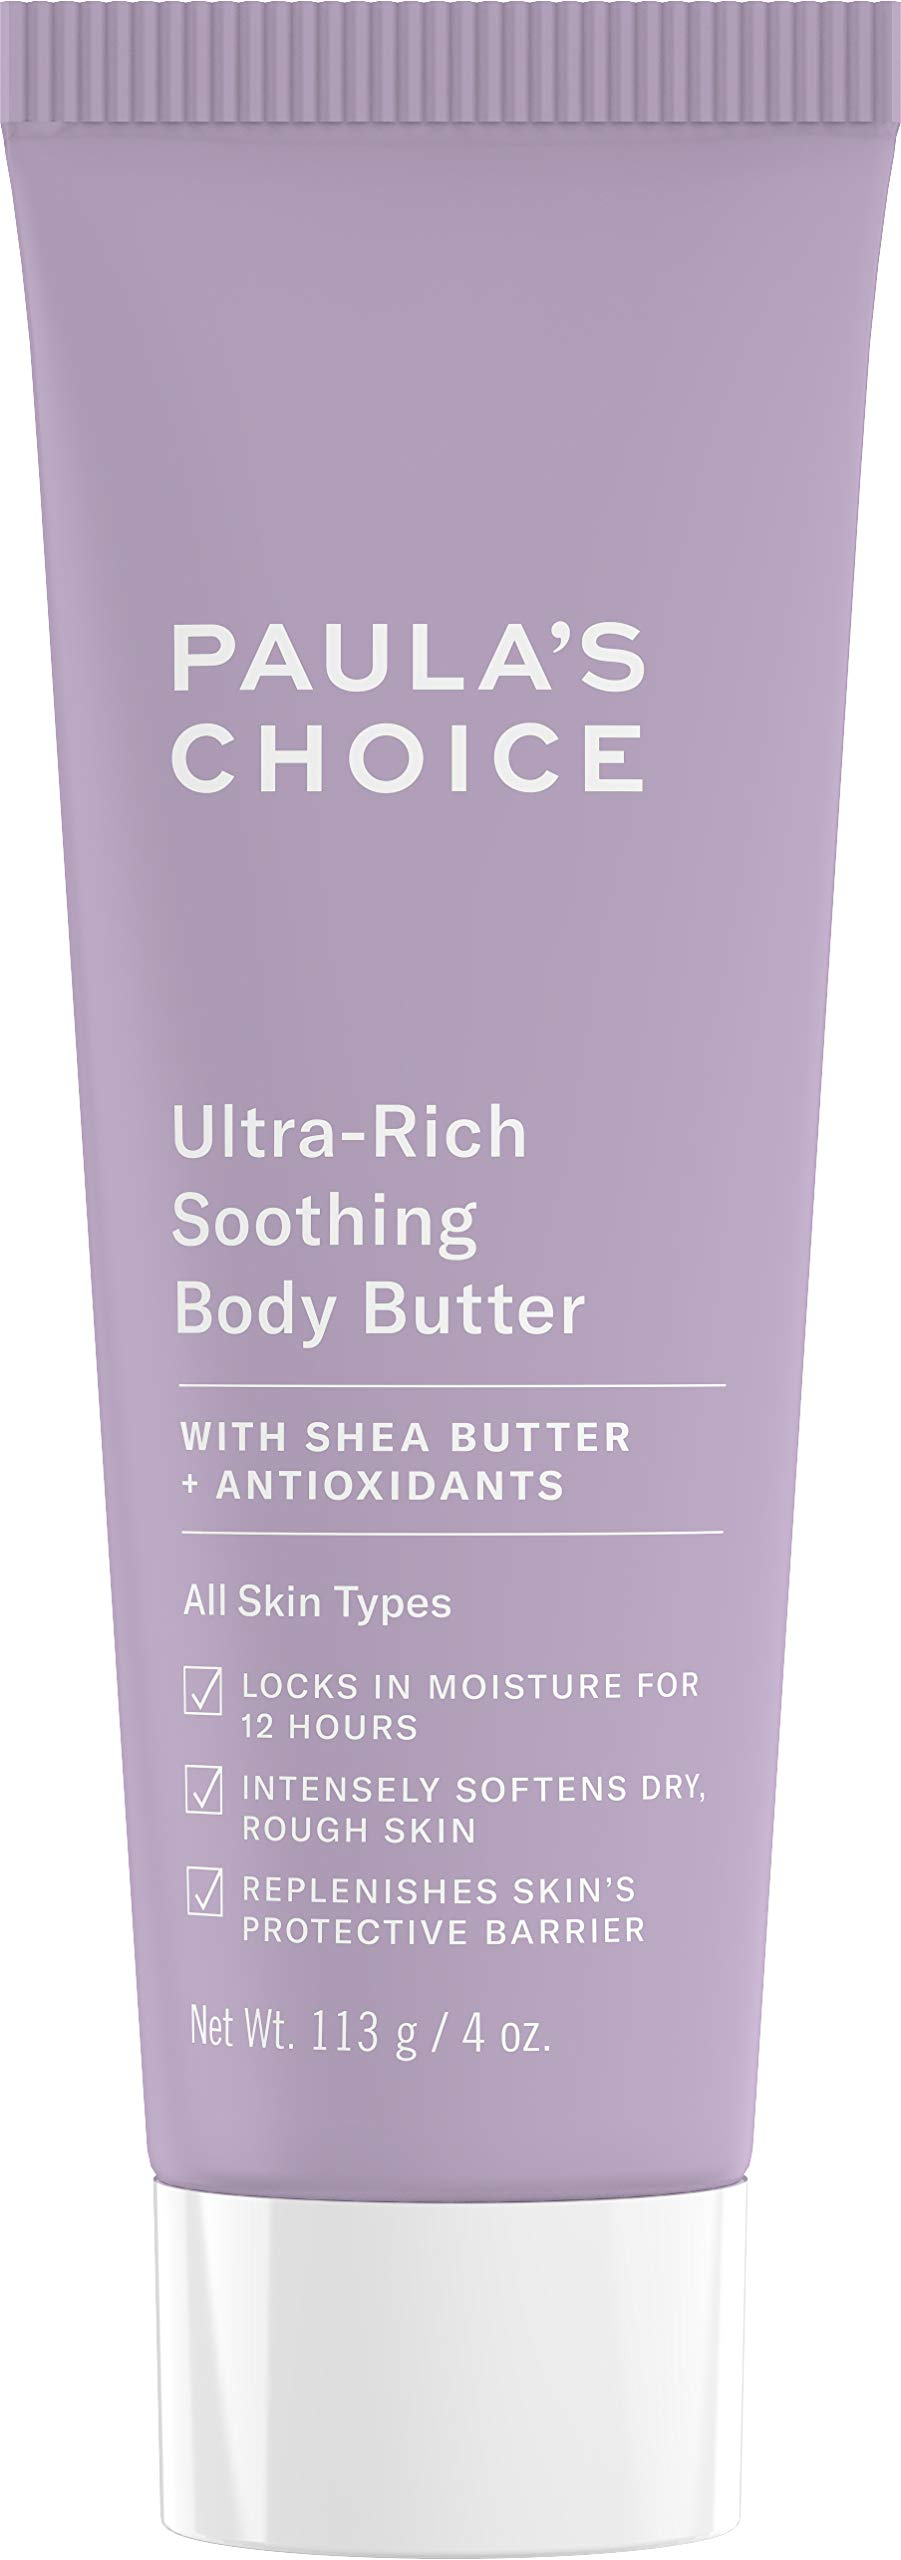 Paula's Choice Ultra-Rich Soothing Body Butter with Vitamin C & E, Shea Butter & Squalane, Sensitive, Dry Skin, 4 Ounce